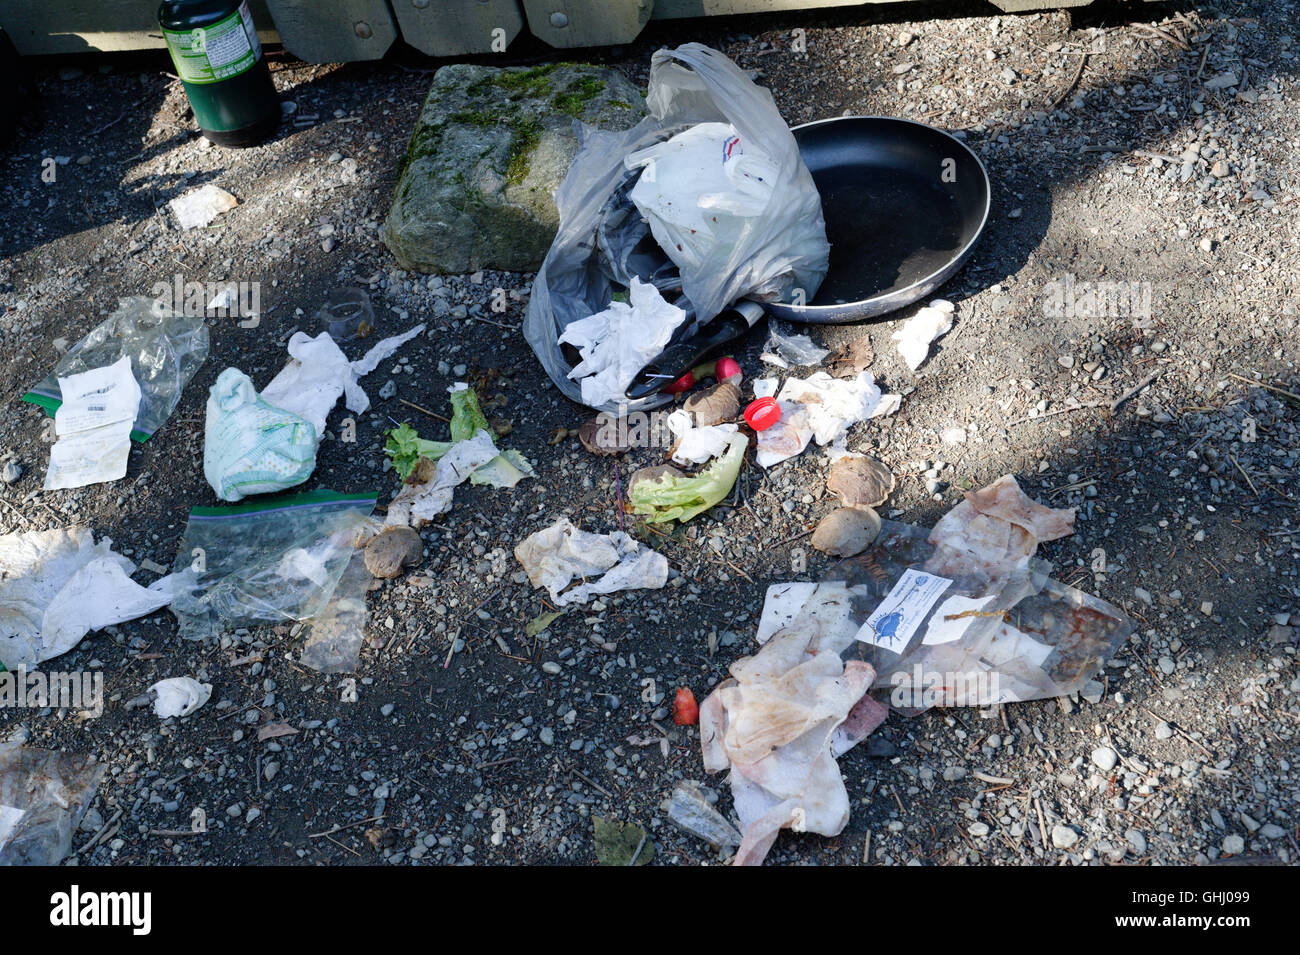 A rubbish bag torn open by birds on a campsite - Stock Image